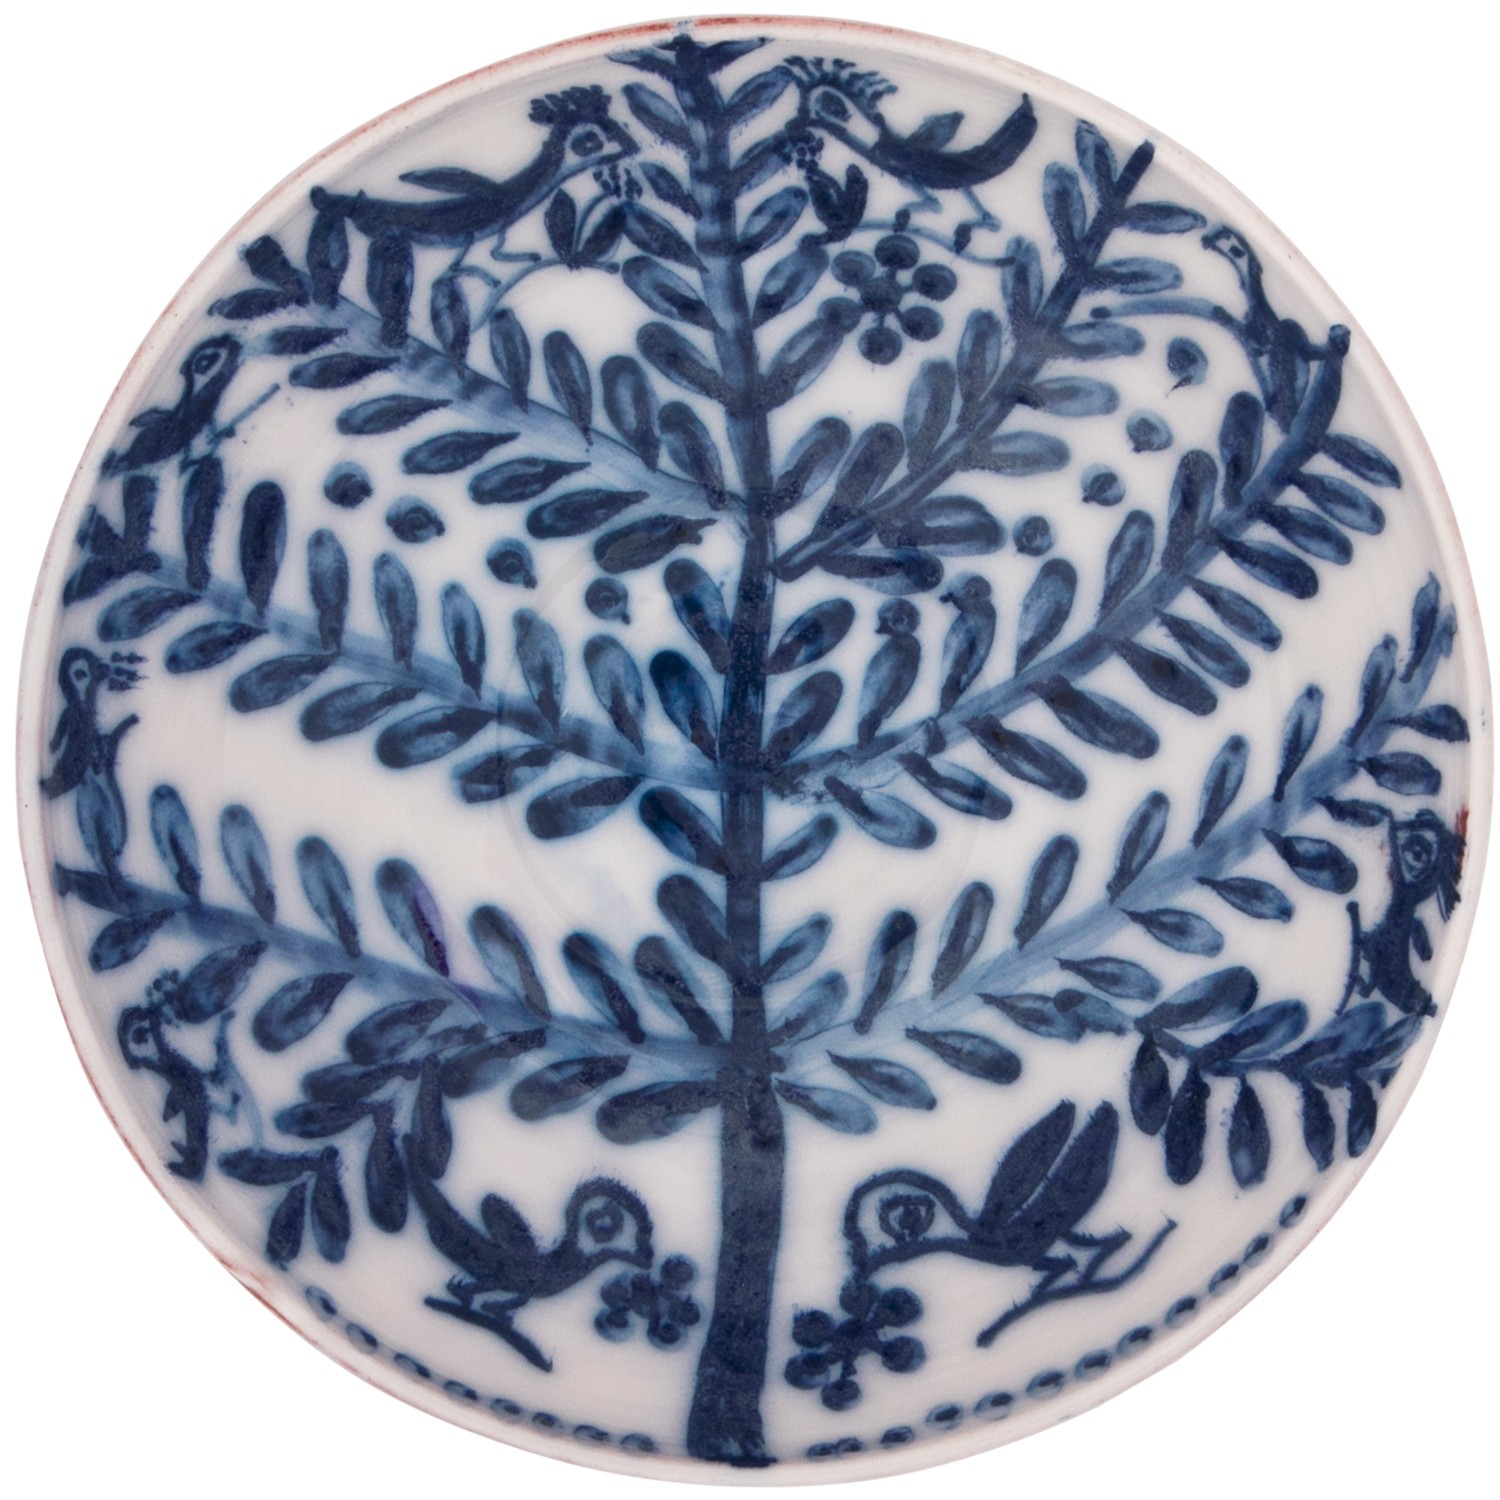 Large Decorative Bowl | Handmade Blue and White Tree with Birds -1